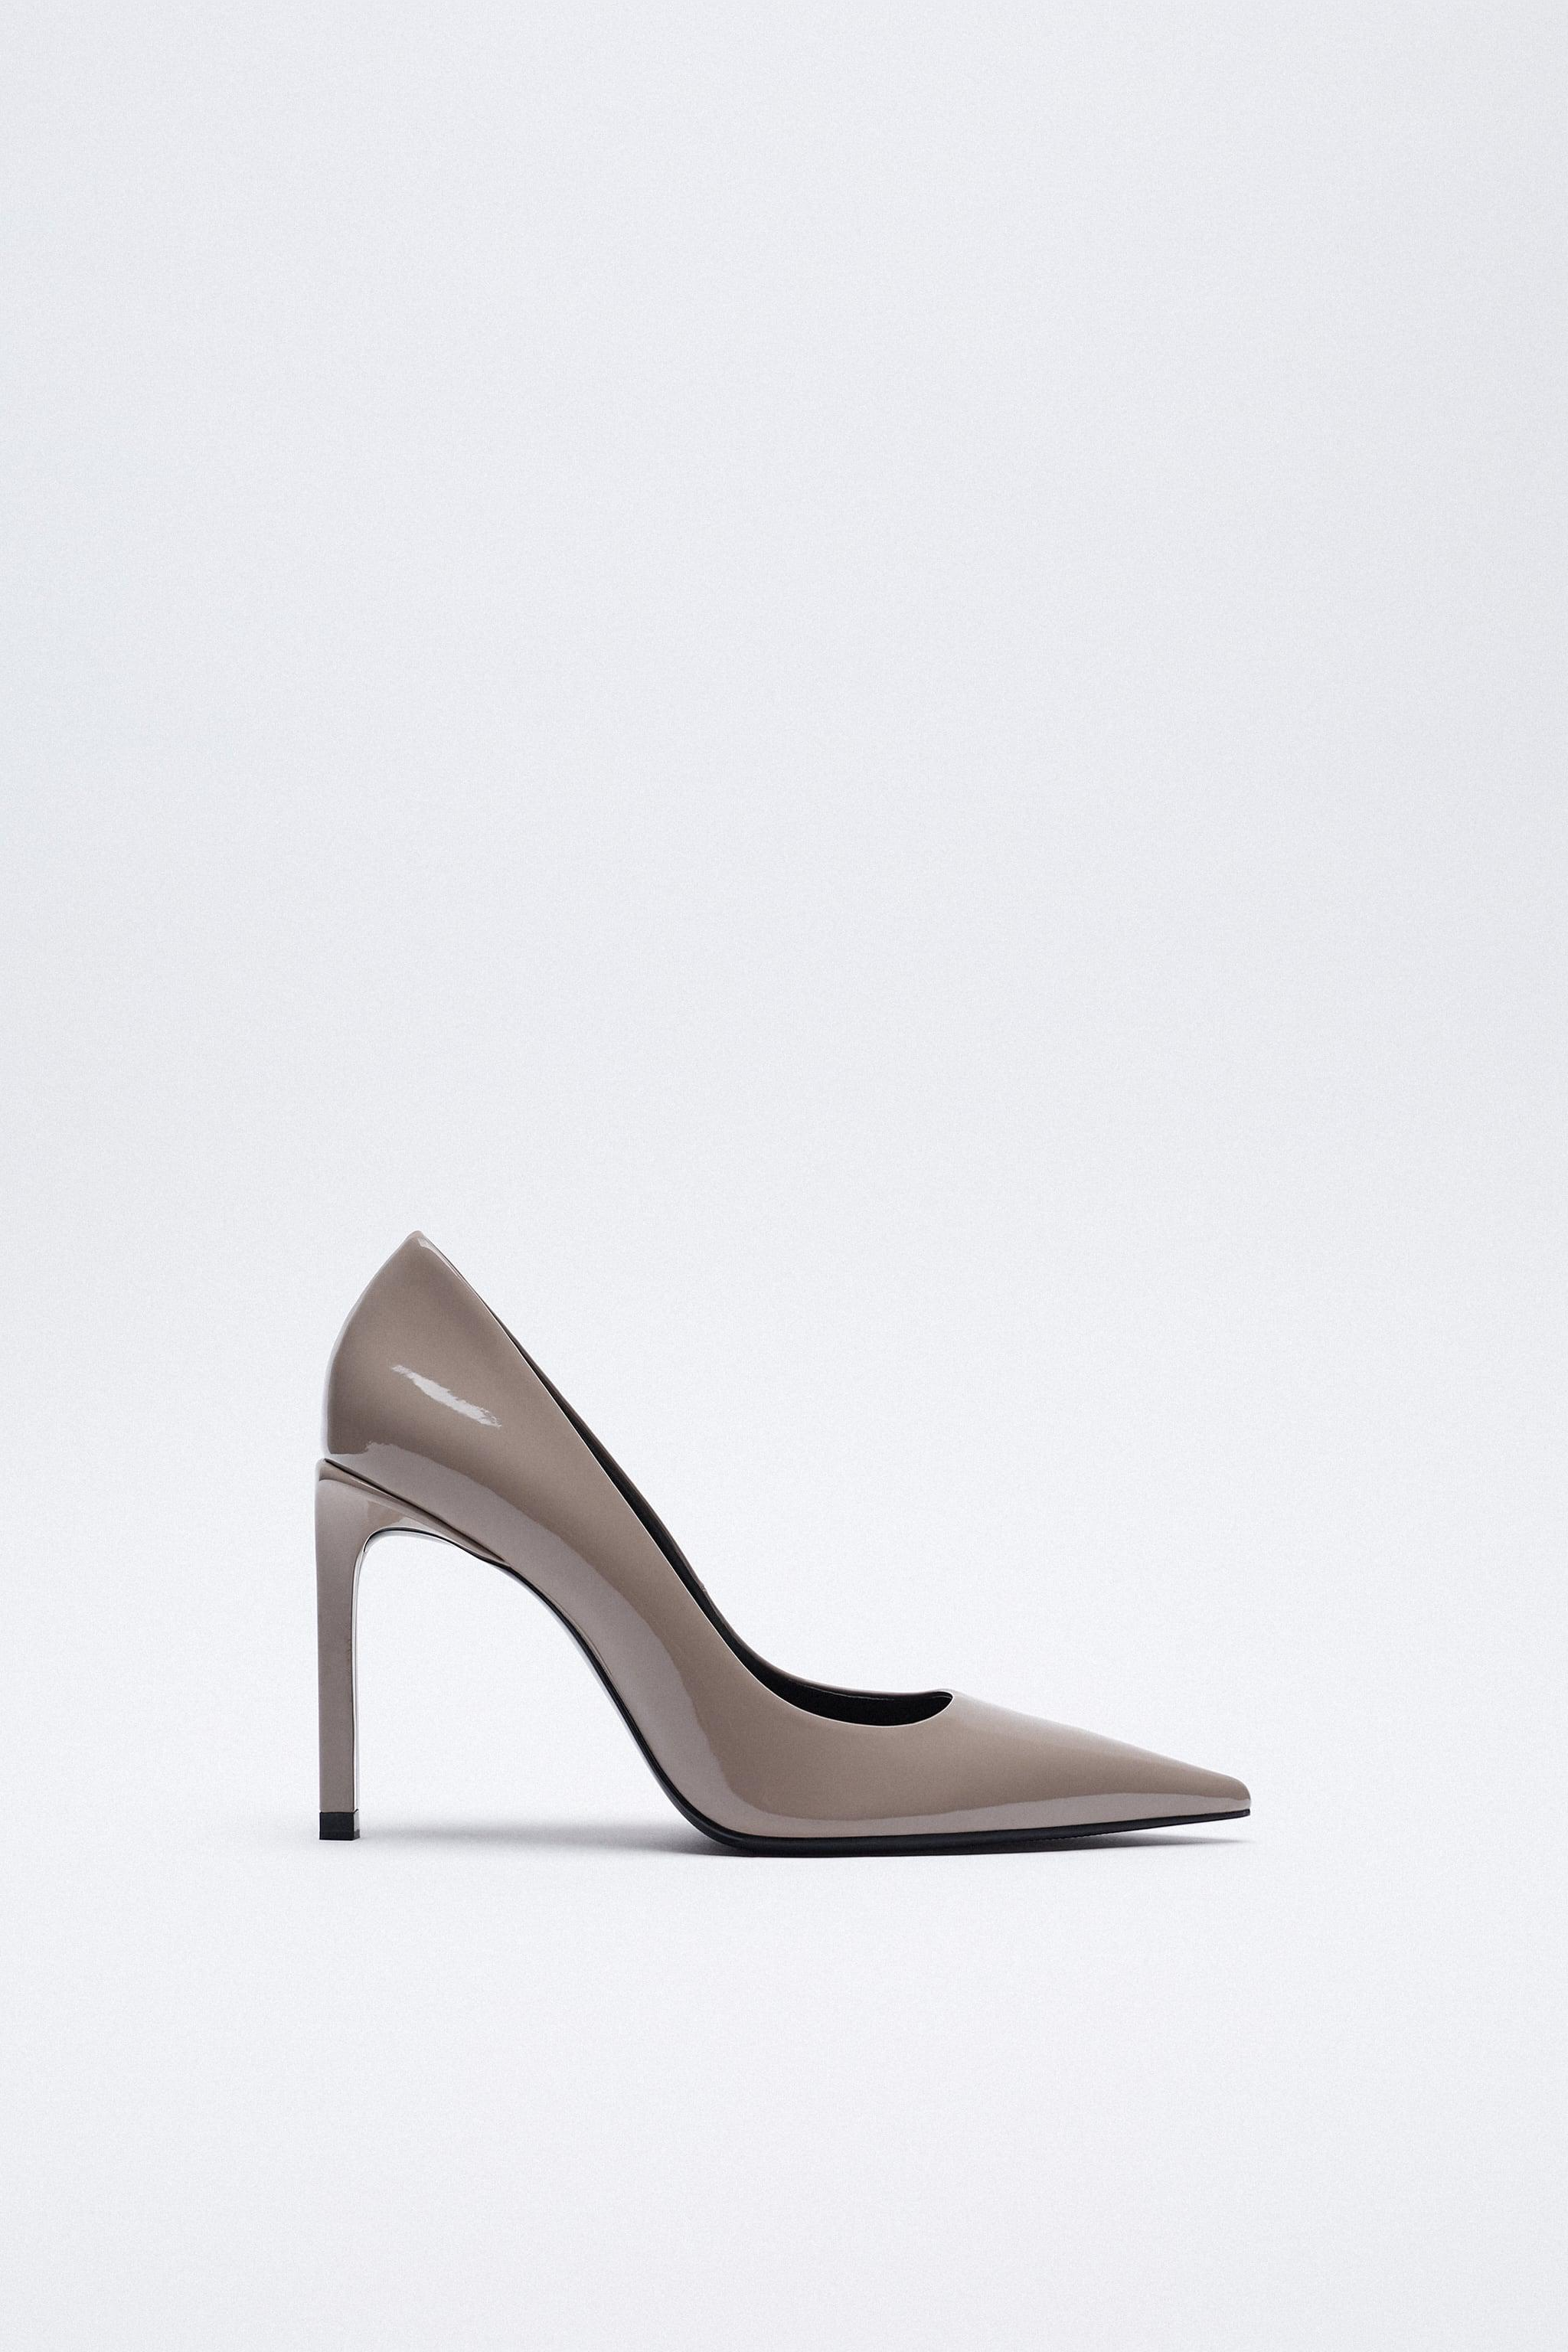 PATENT FINISH POINTED TOE HEELS